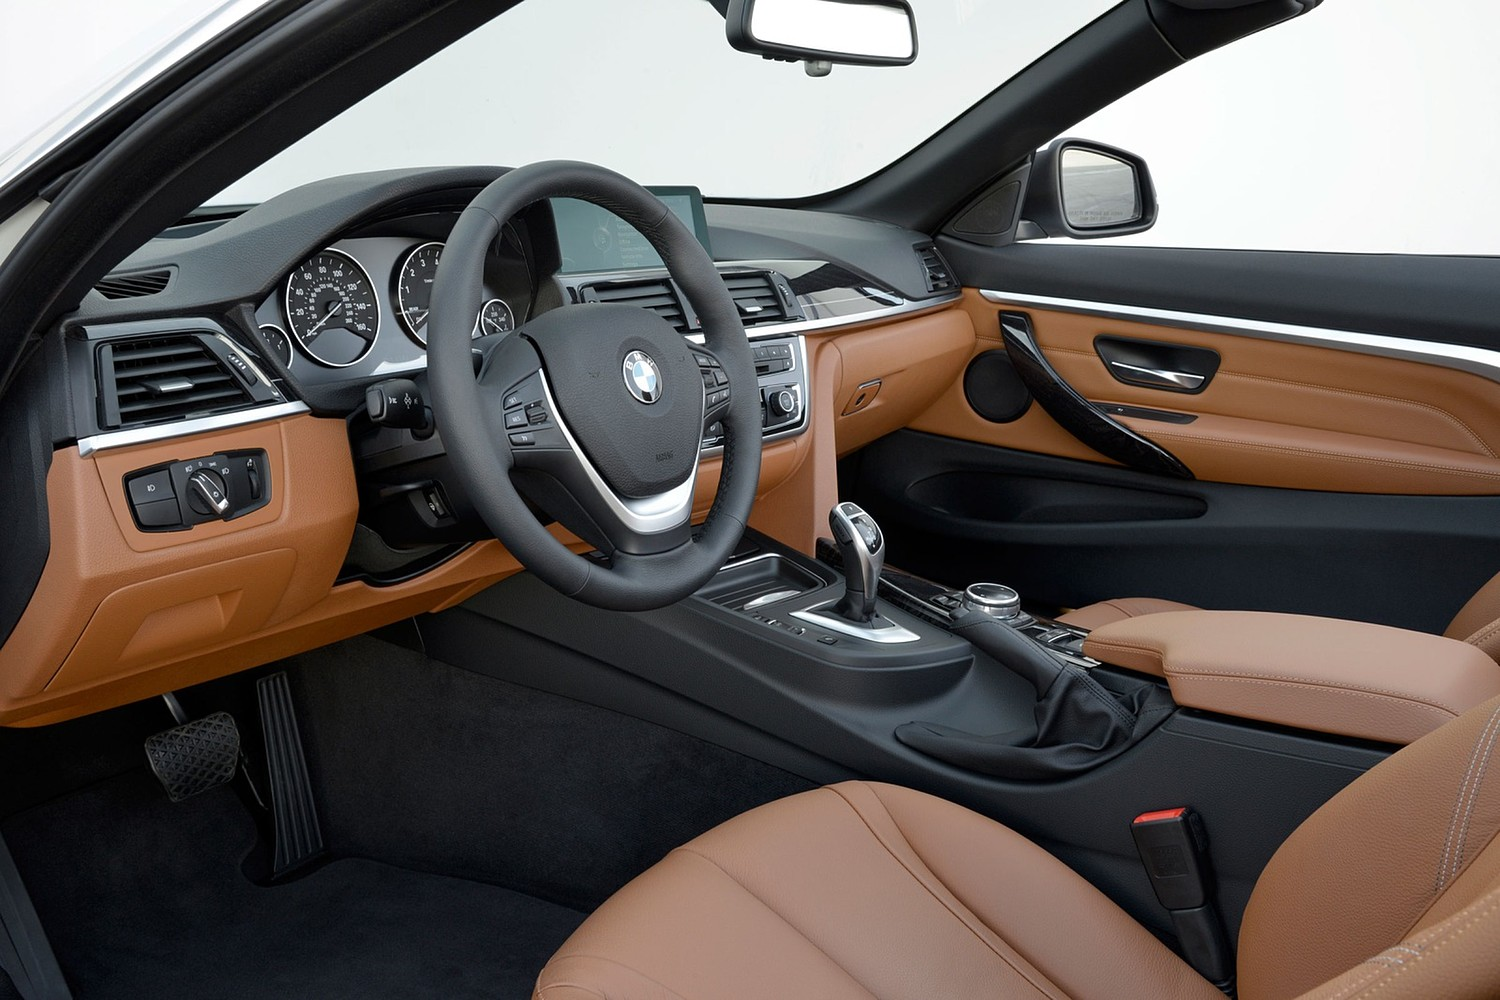 2017 BMW 4 Series 440i Convertible Interior. Luxury Line Package Shown.